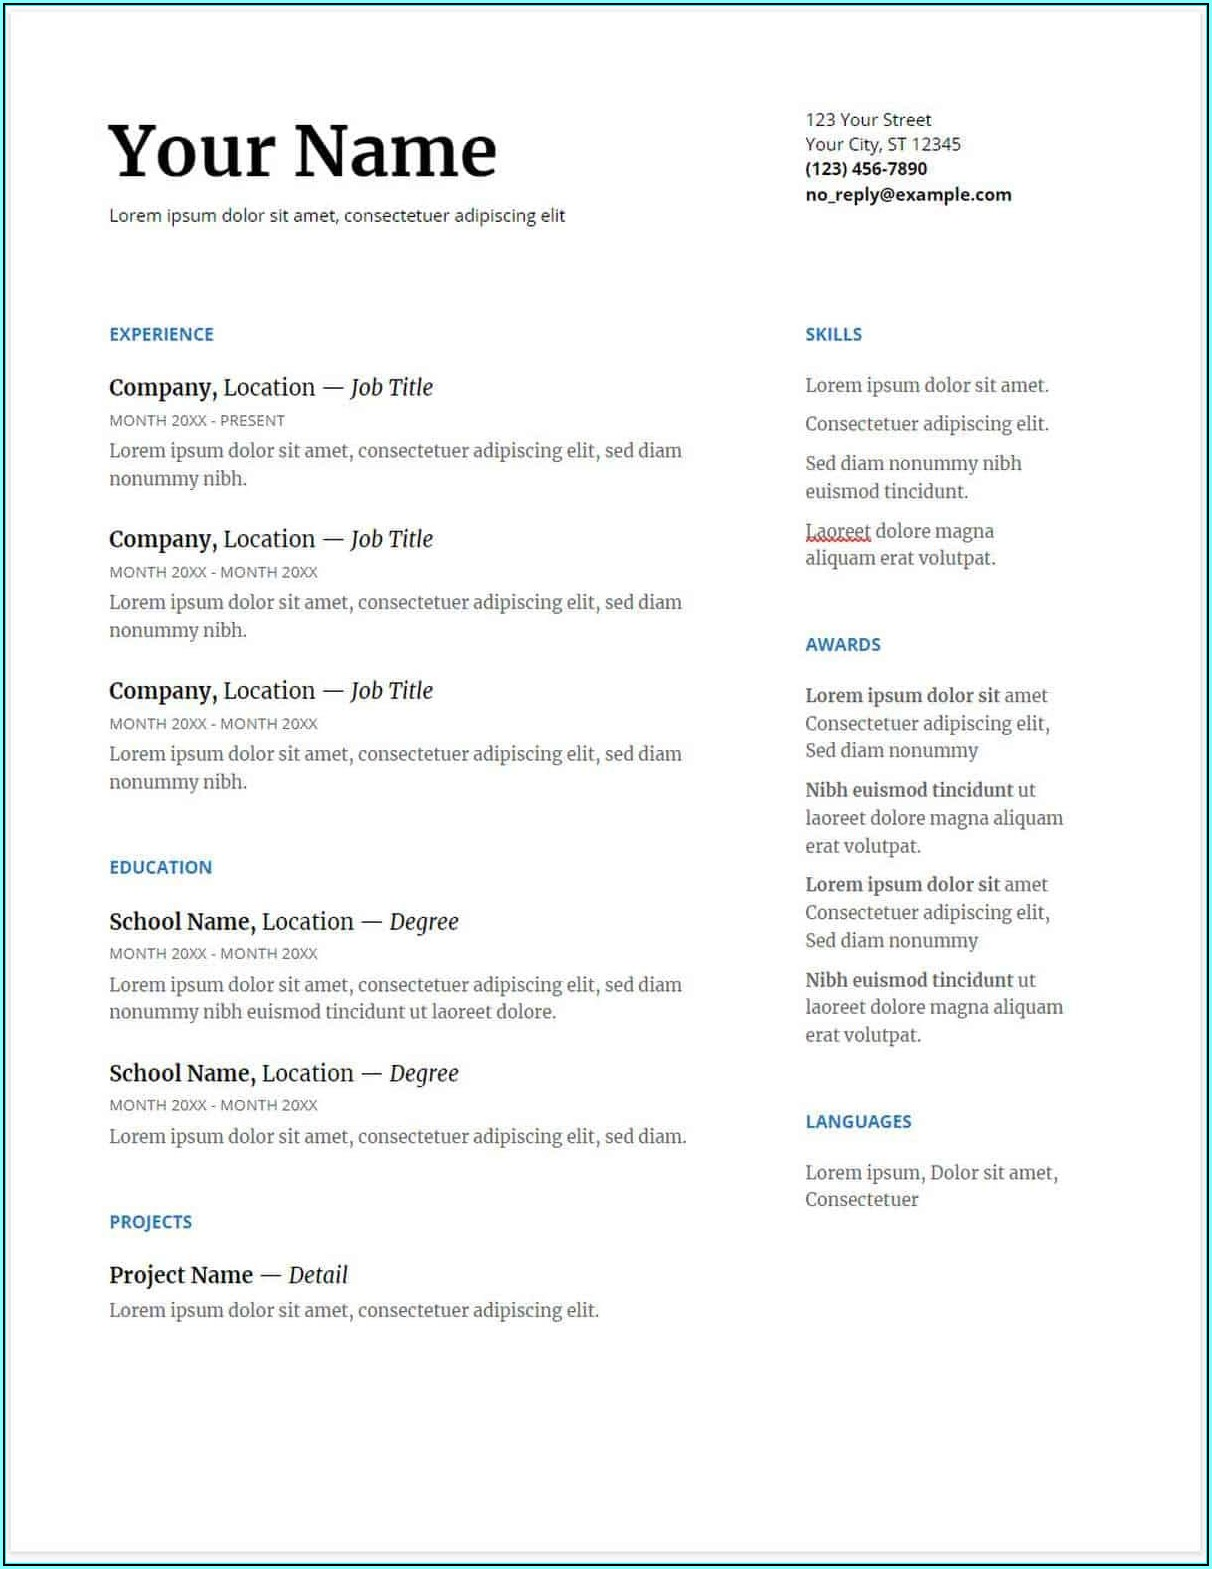 Google Resume Free Templates